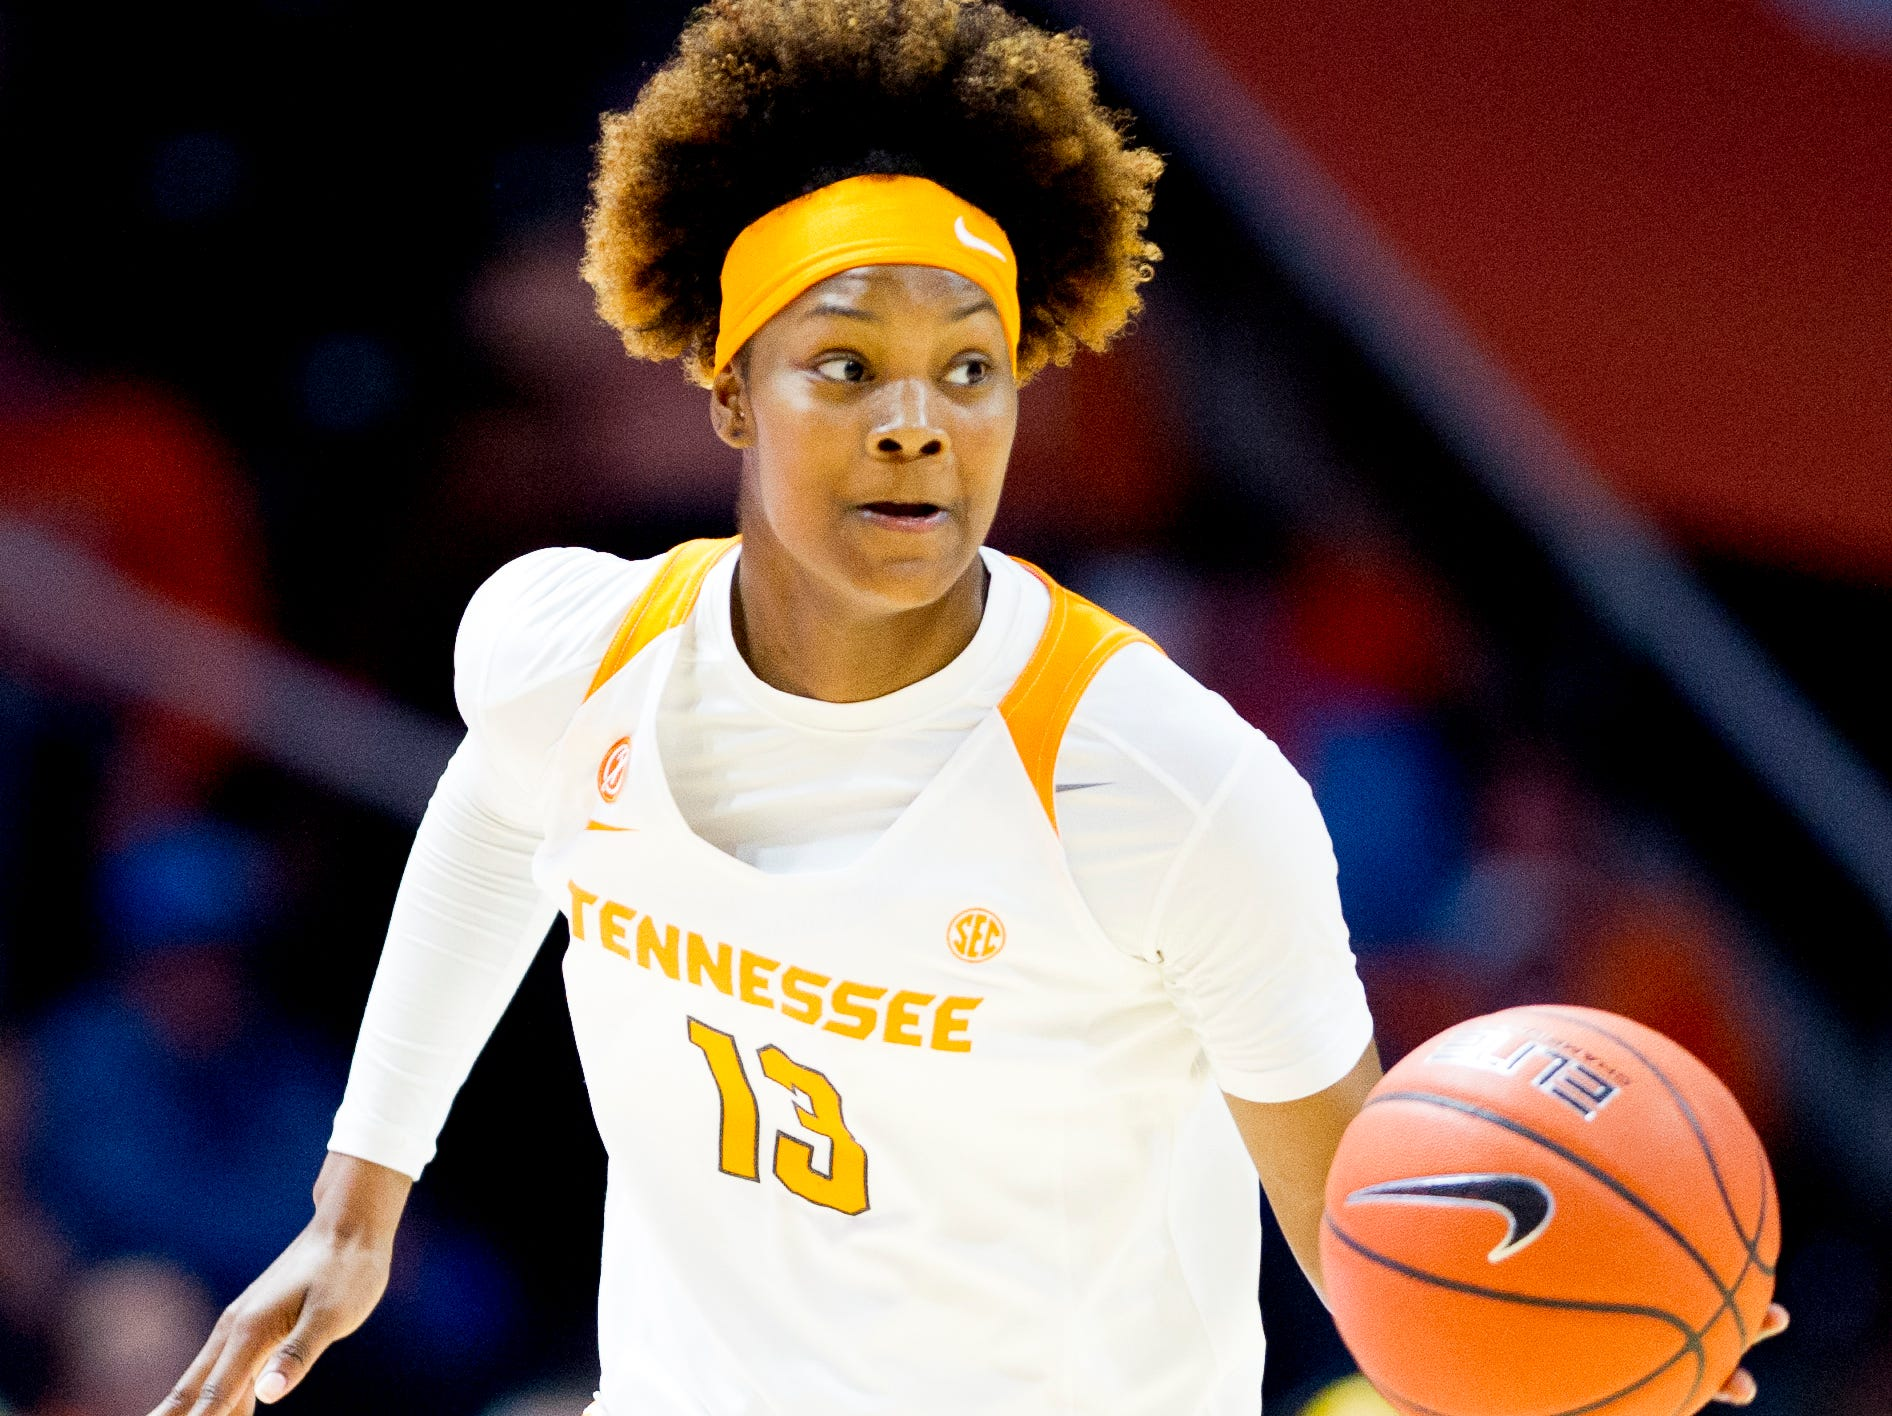 Tennessee guard Jazmine Massengill (13) dribbles down the court during a game between the Tennessee Lady Vols and Murray State at Thompson-Boling Arena in Knoxville, Tennessee on Friday, December 28, 2018.